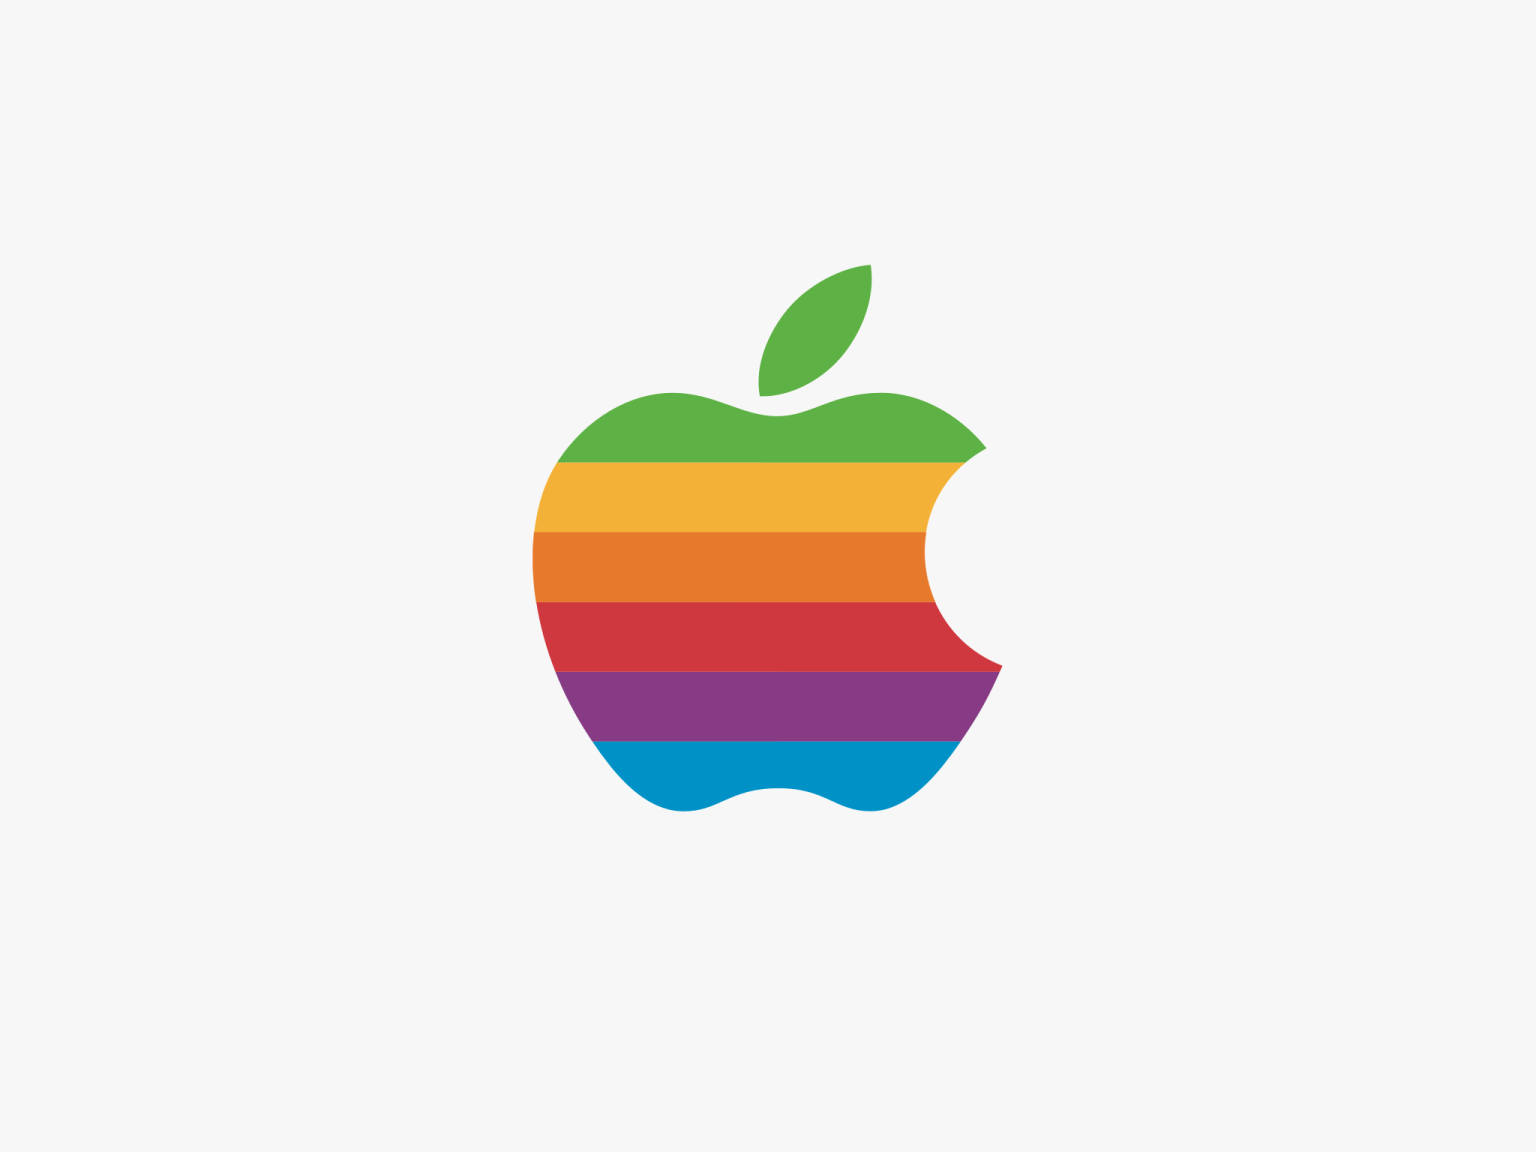 Apple Inc. Interactive